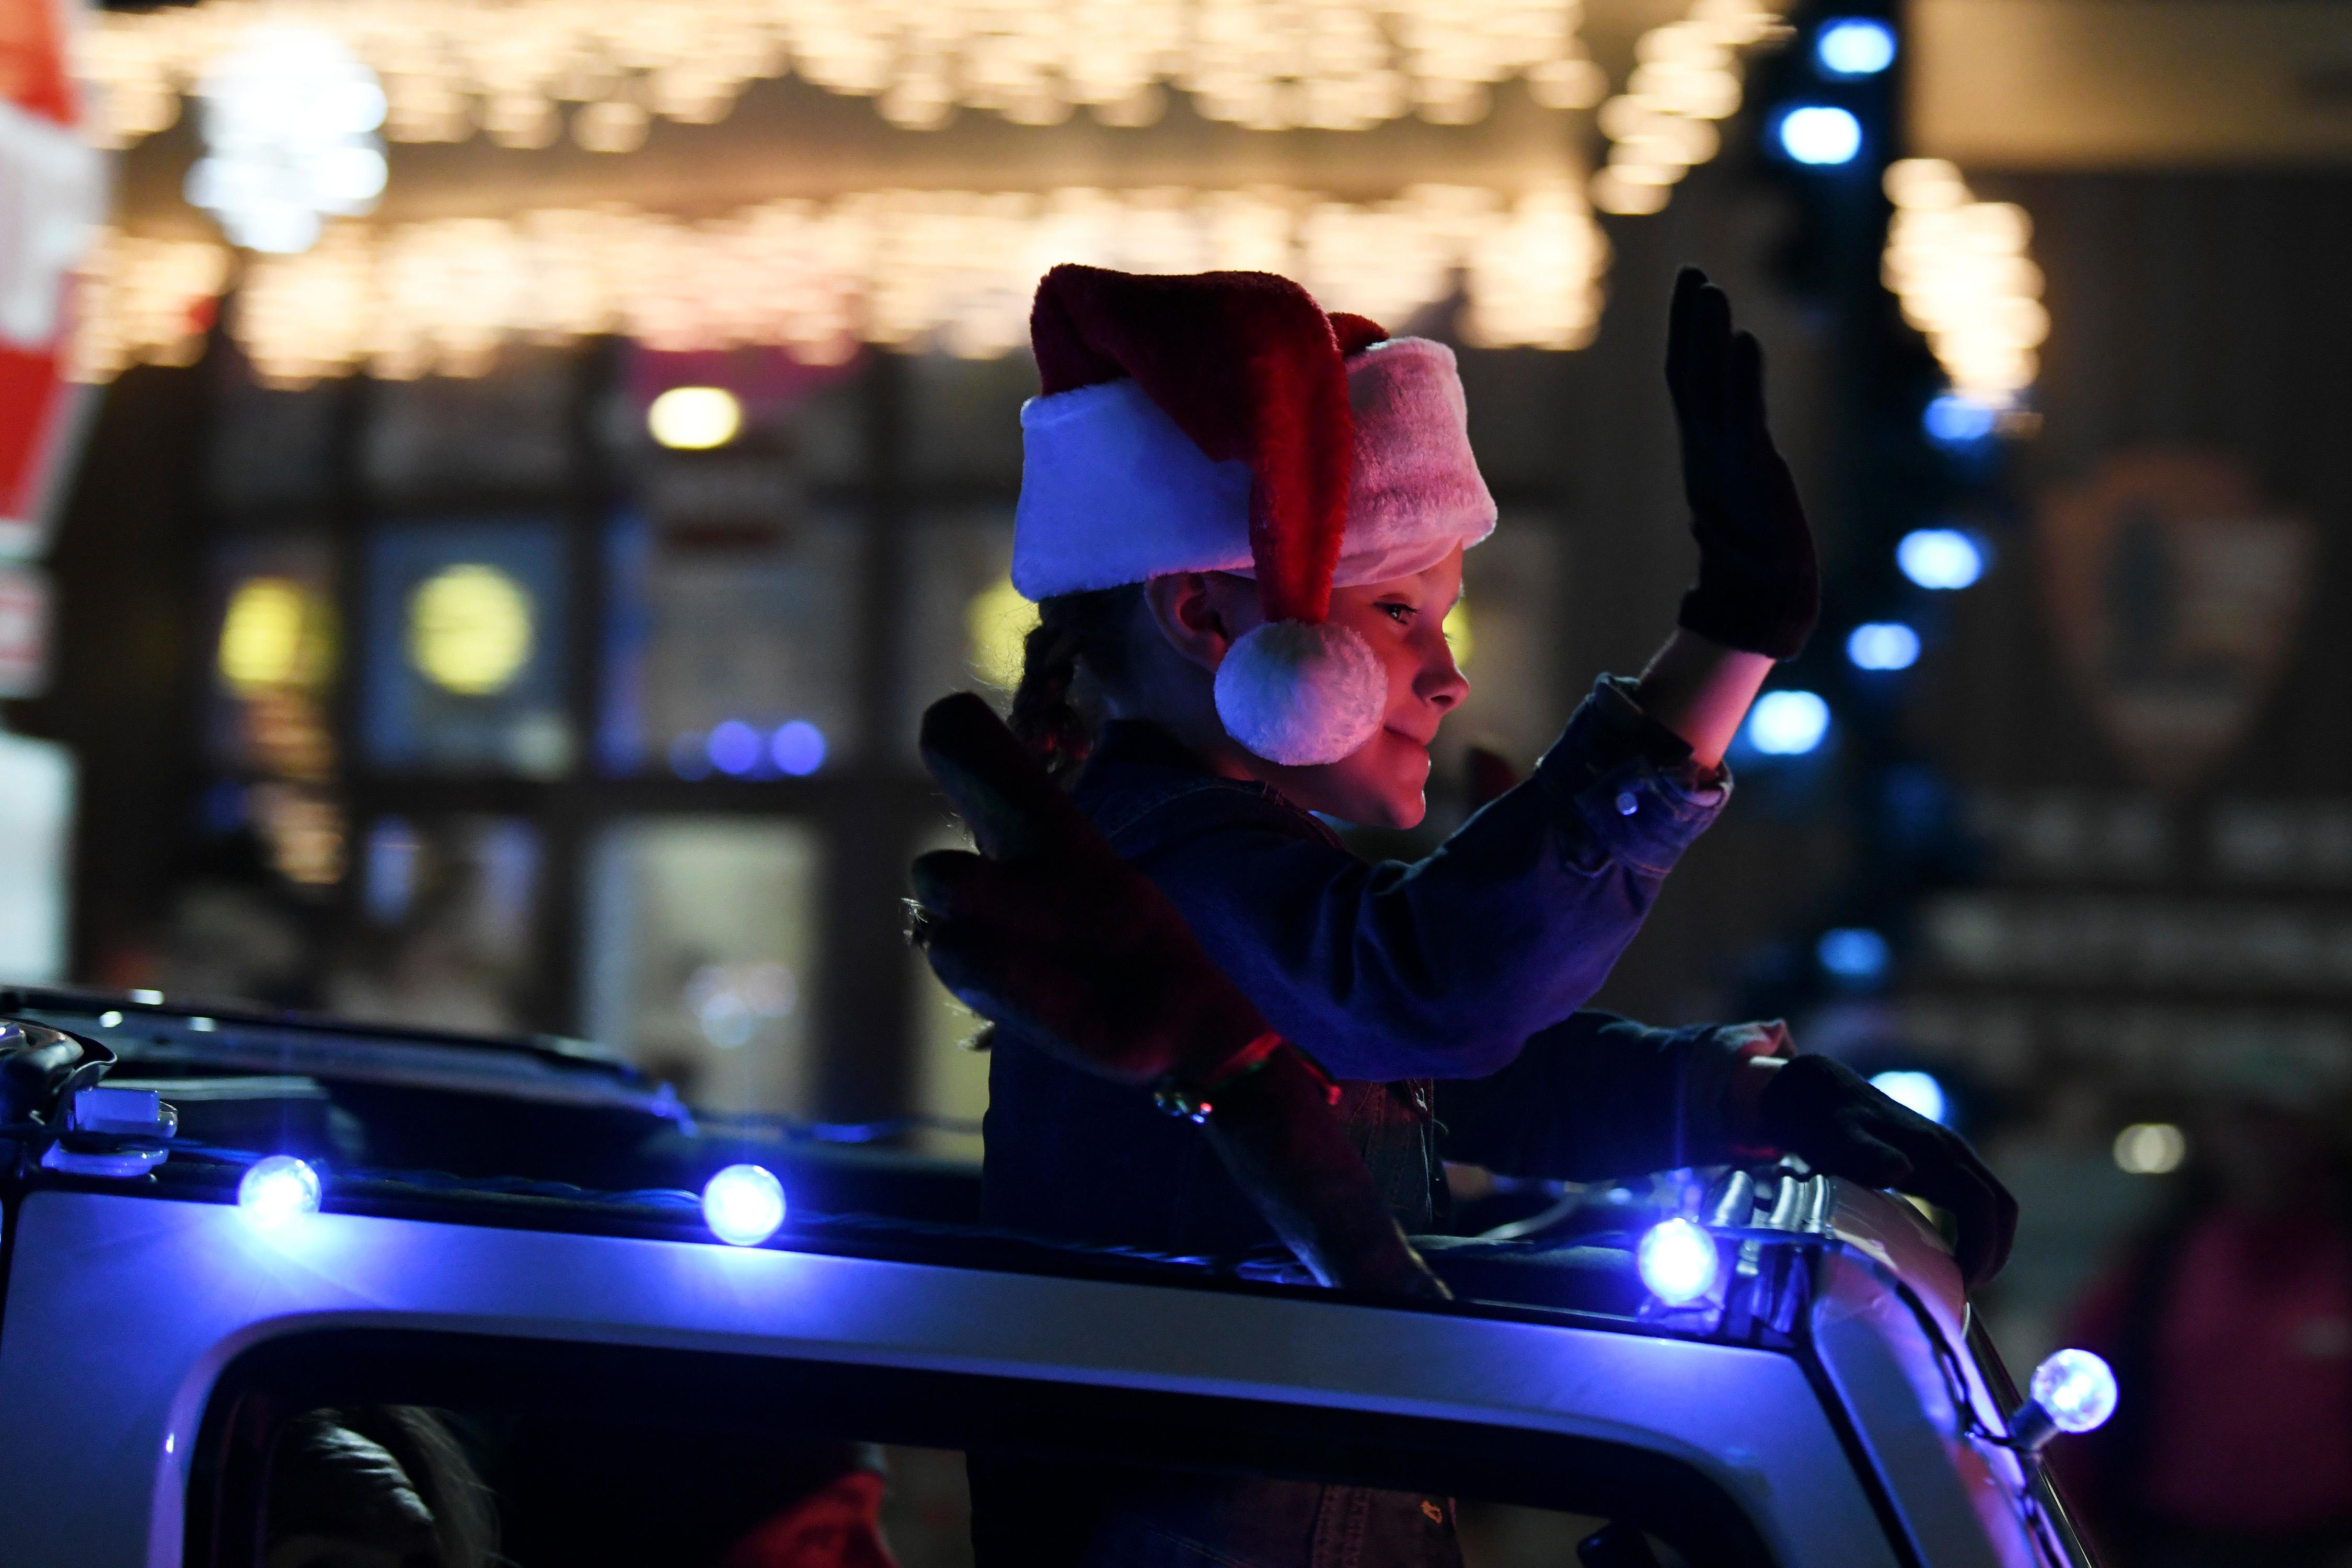 A young girl in a decorated vehicle waves to the crowd during the Santa's Electric Parade Saturday, December 2, 2017, in Boulder City. [Sam Morris/Las Vegas News Bureau]